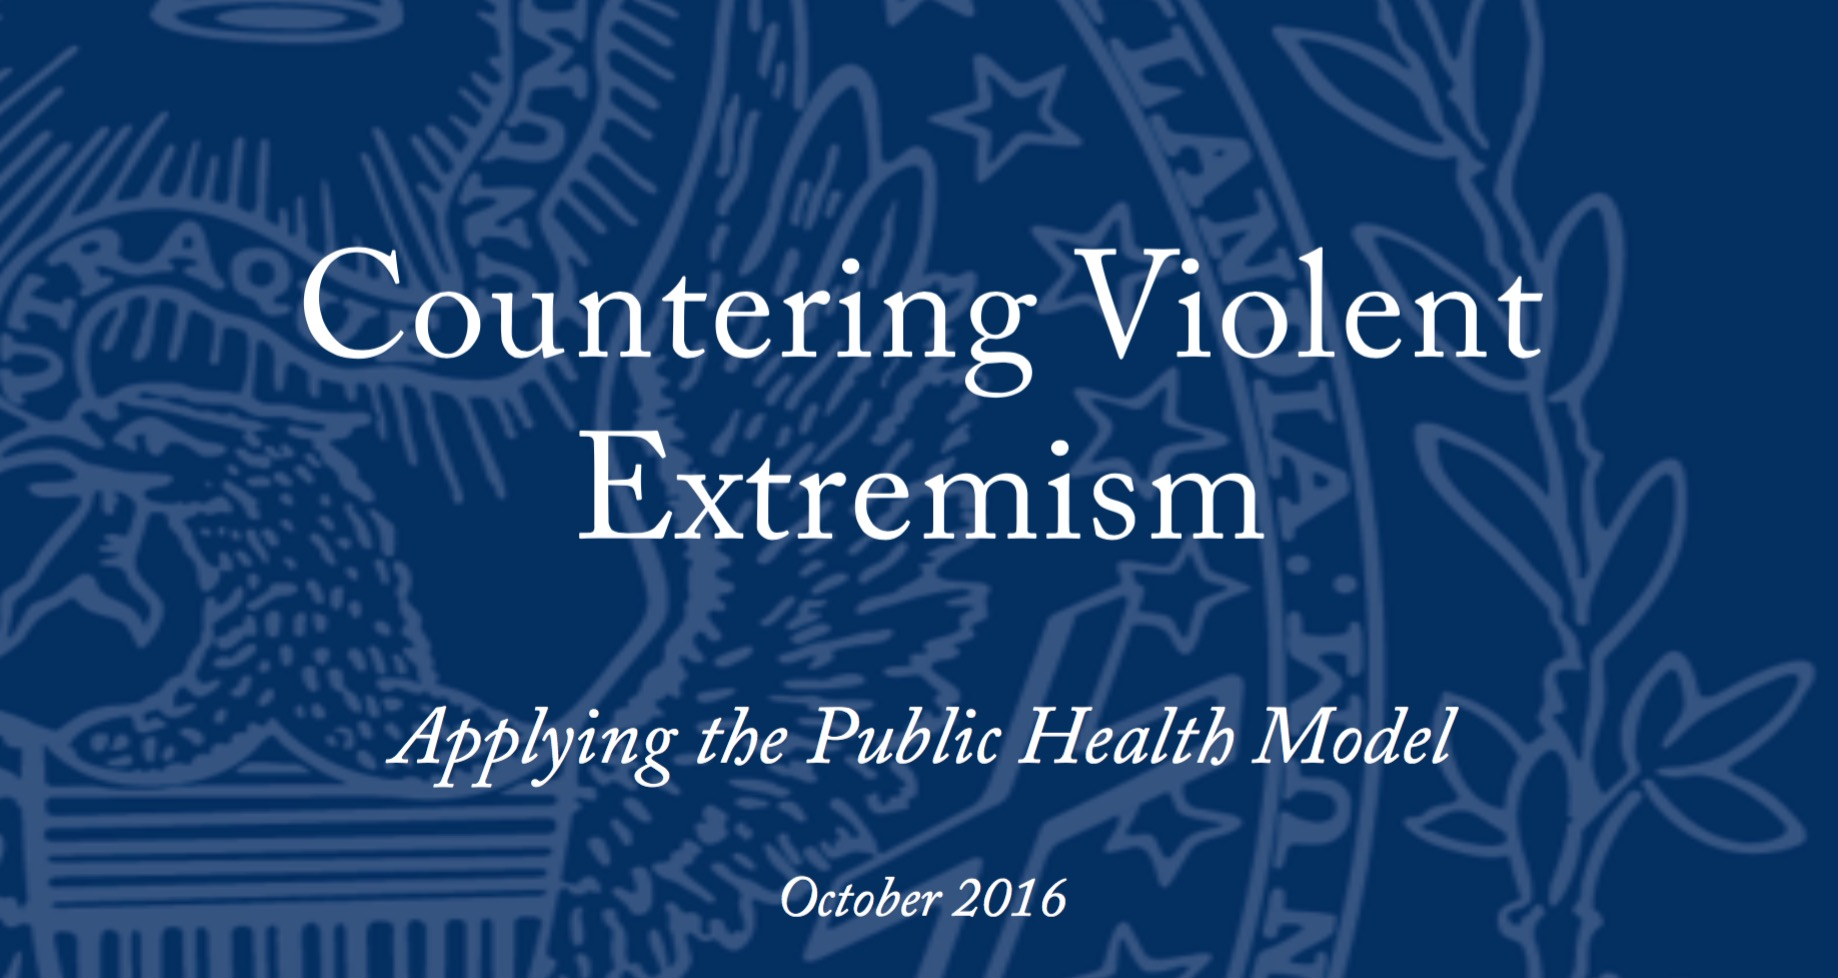 NSCITF Report on Countering Violent Extremism